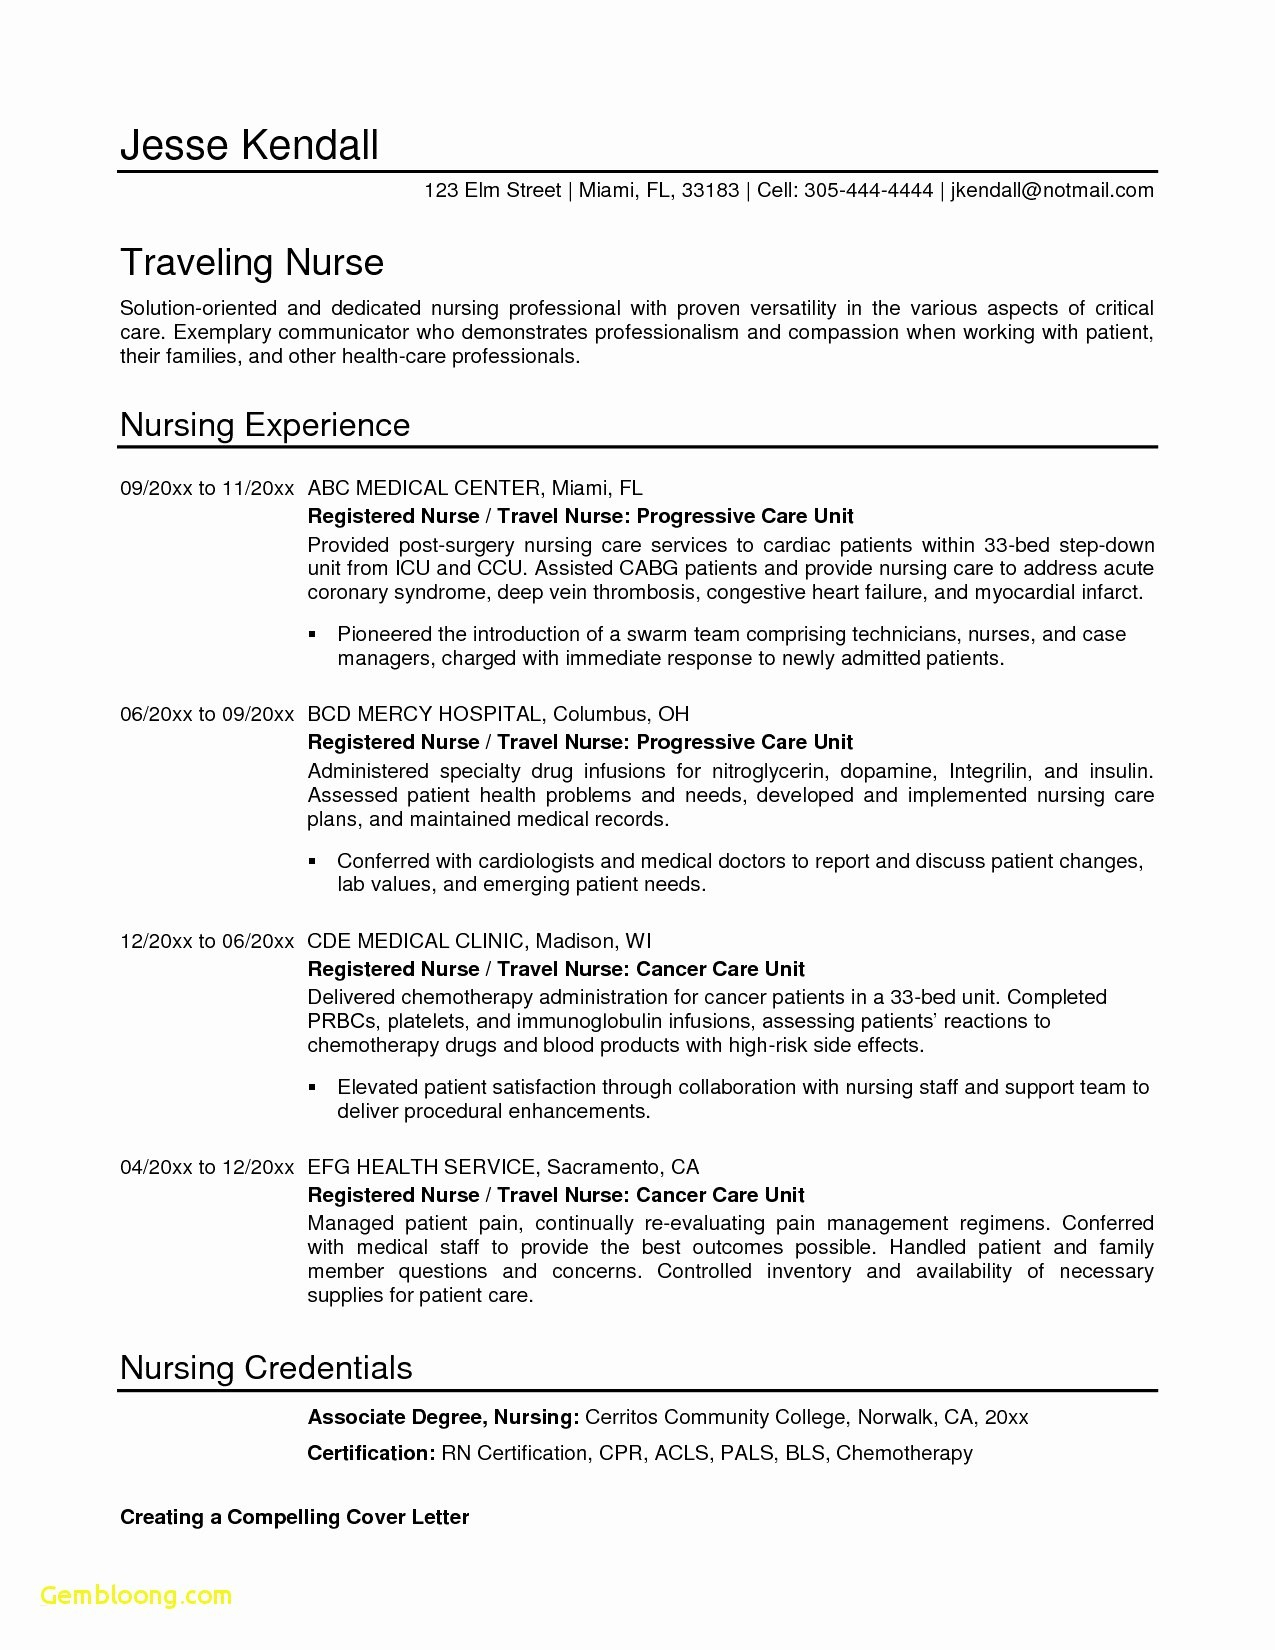 Nursing Resume format - Nursing Skills Resume Awesome Nursing Resume Lovely Rn Bsn Resume